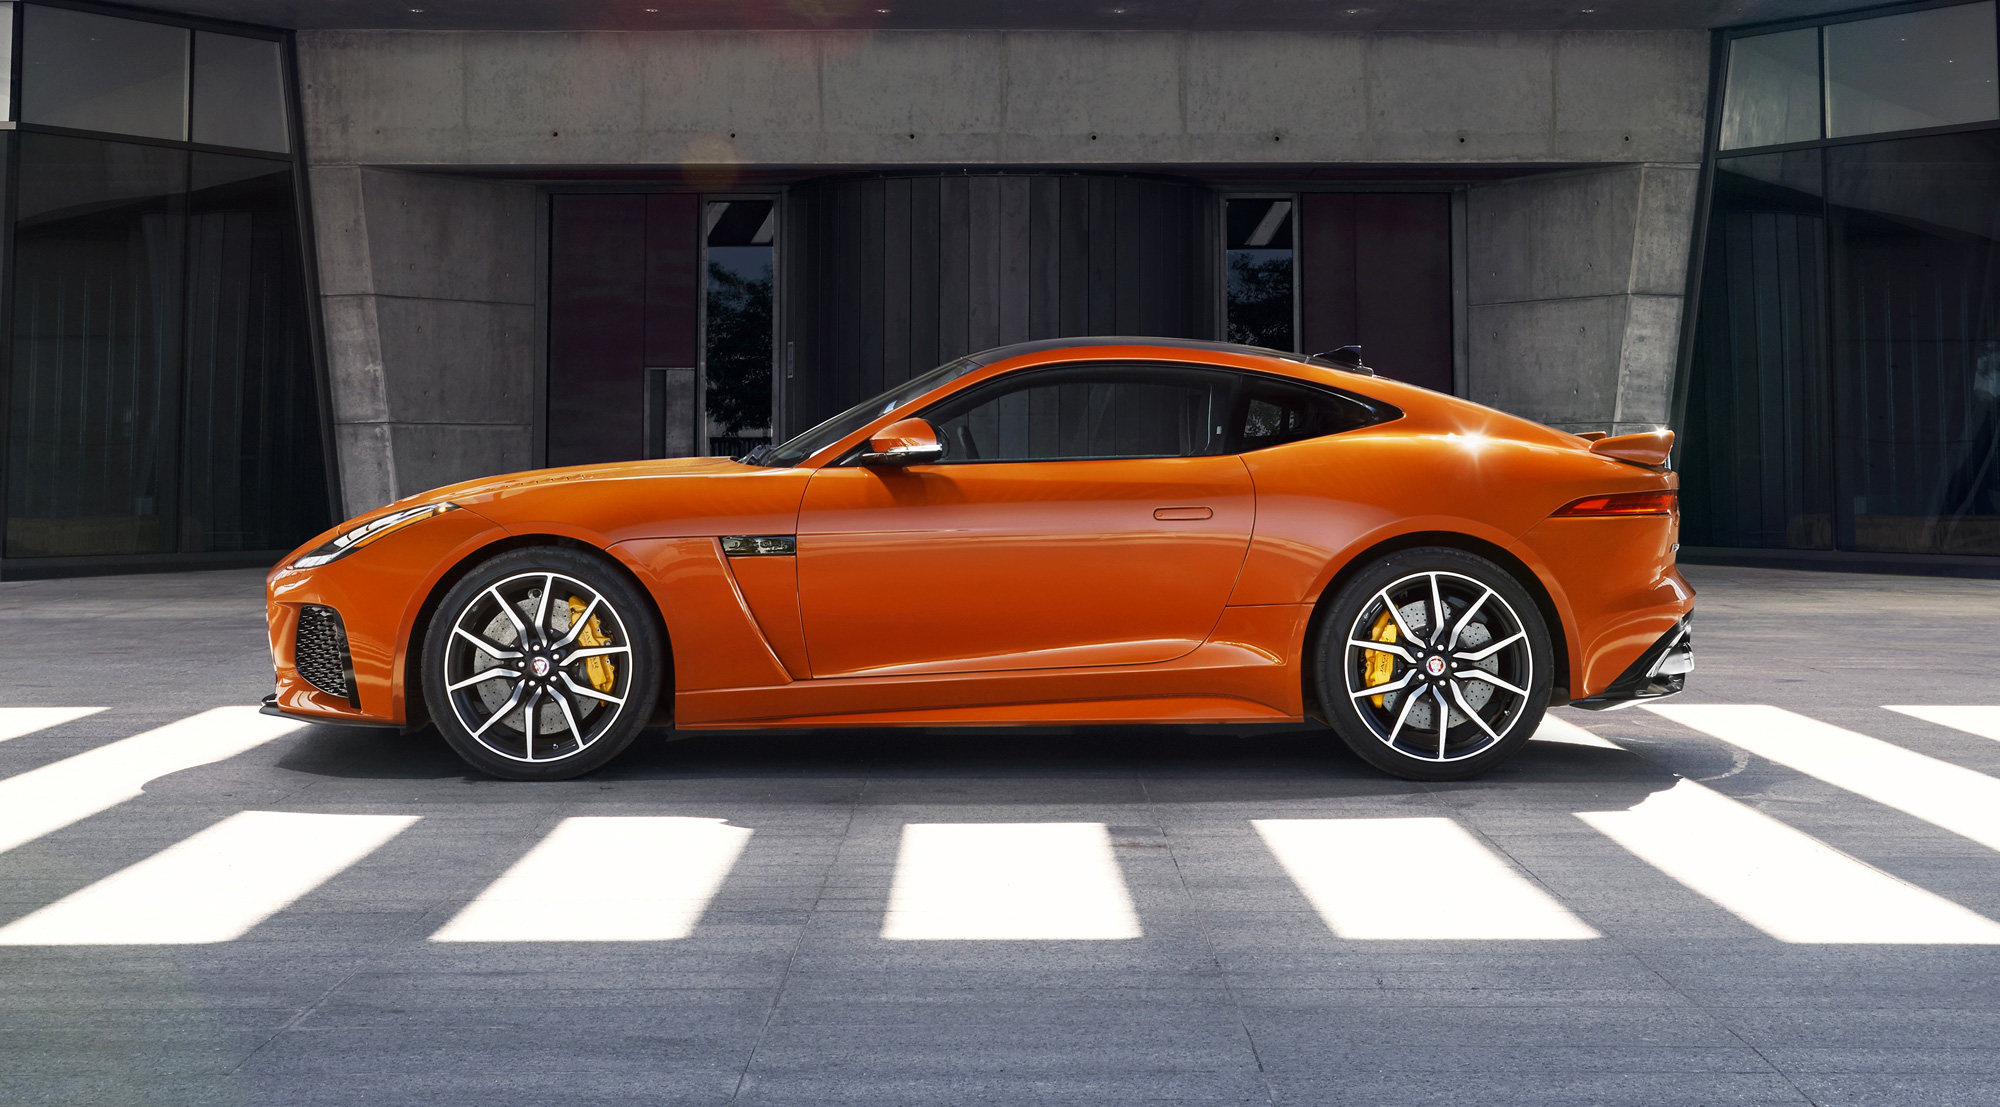 F Type Price >> The F-Type SVR – Jaguar's All-Weather Supercar - Luxurious ...